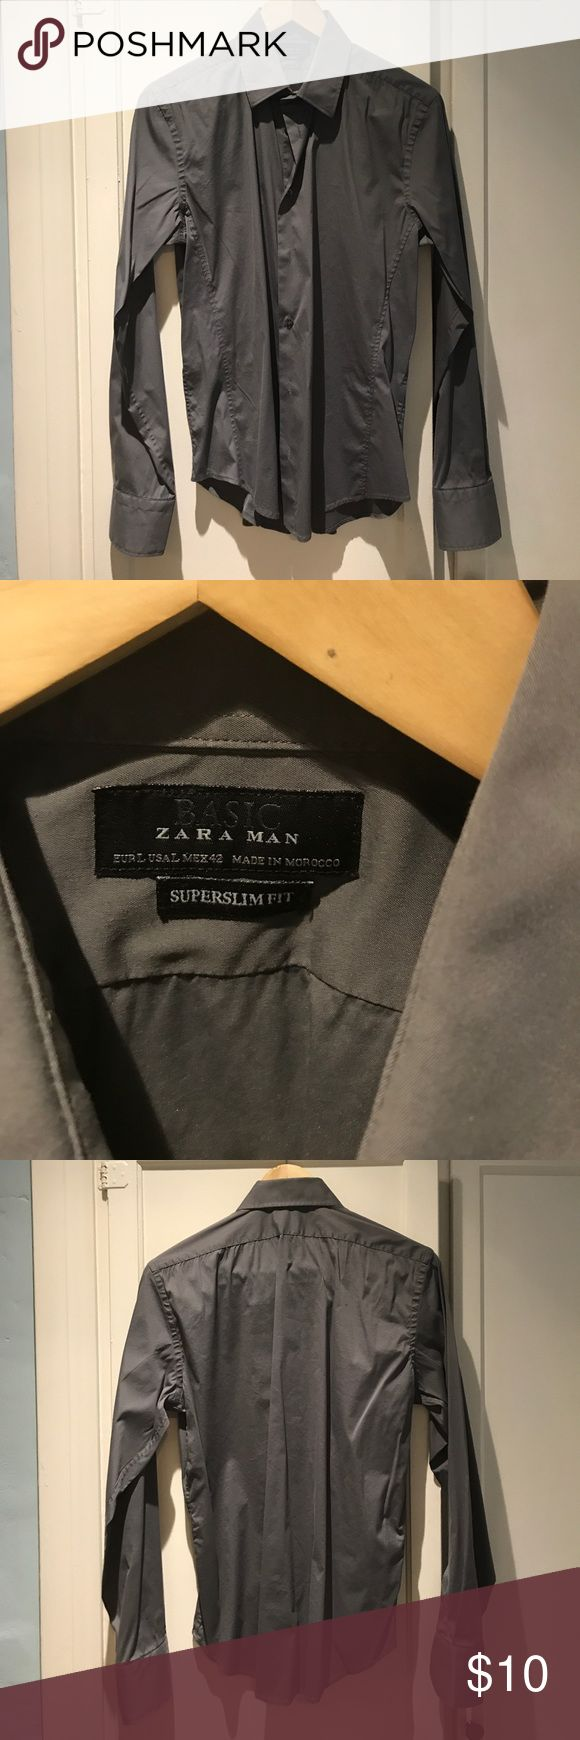 A Men's Zara Super Slim Fit Dress Shirt Size L A Men's Zara Super Slim Fit Gray Dress Shirt Size L in great condition. From a private estate in Beverly Hills, CA. Sorry no trades. Zara Shirts Dress Shirts